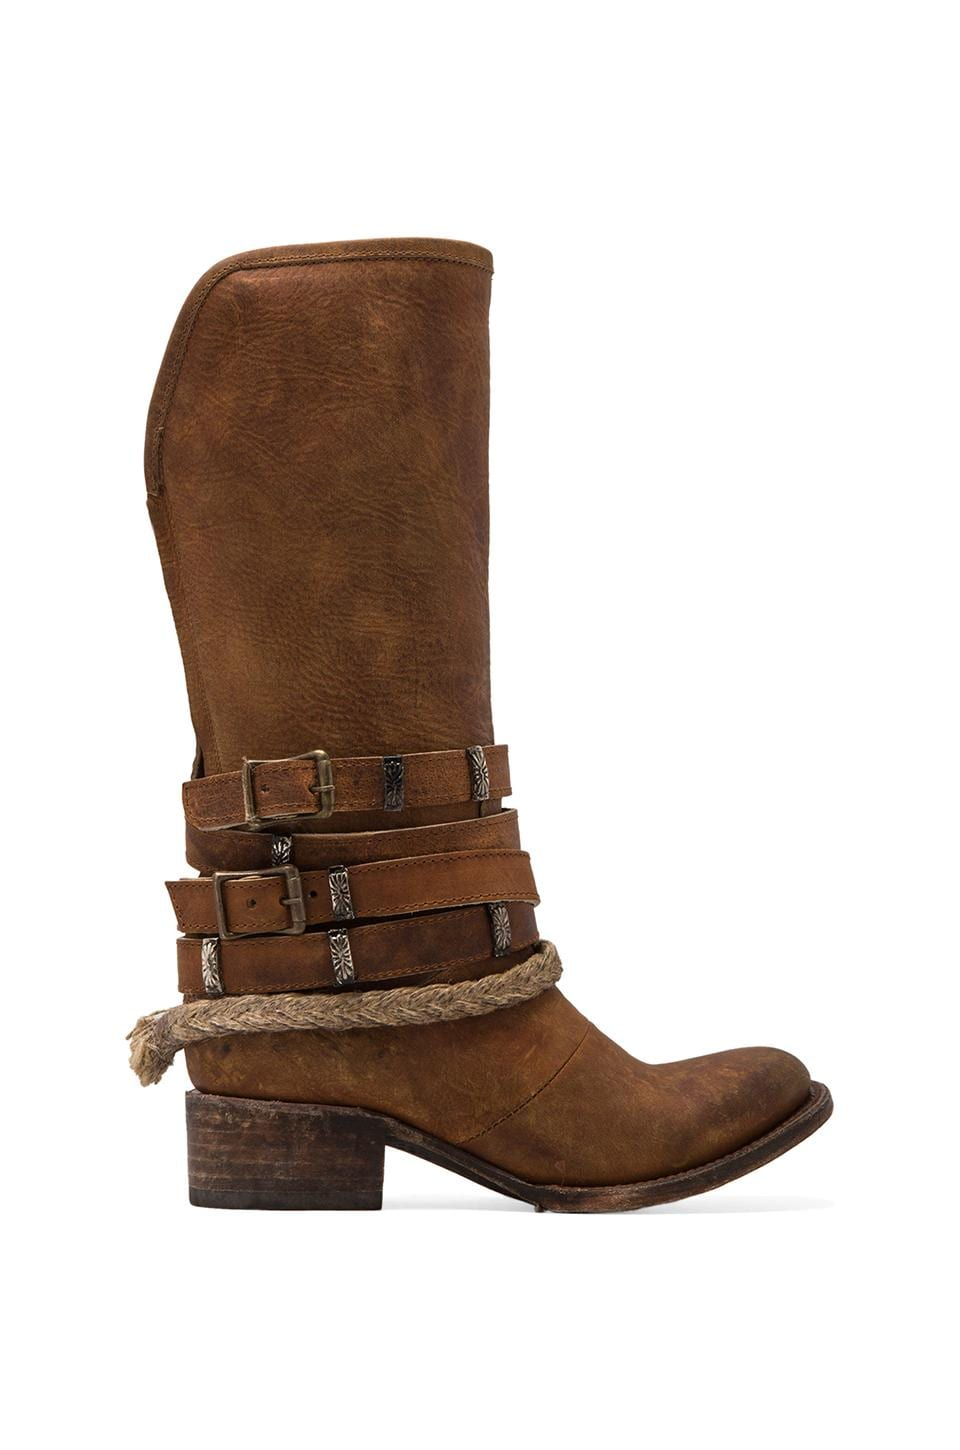 Steven Drover Boot in Tan